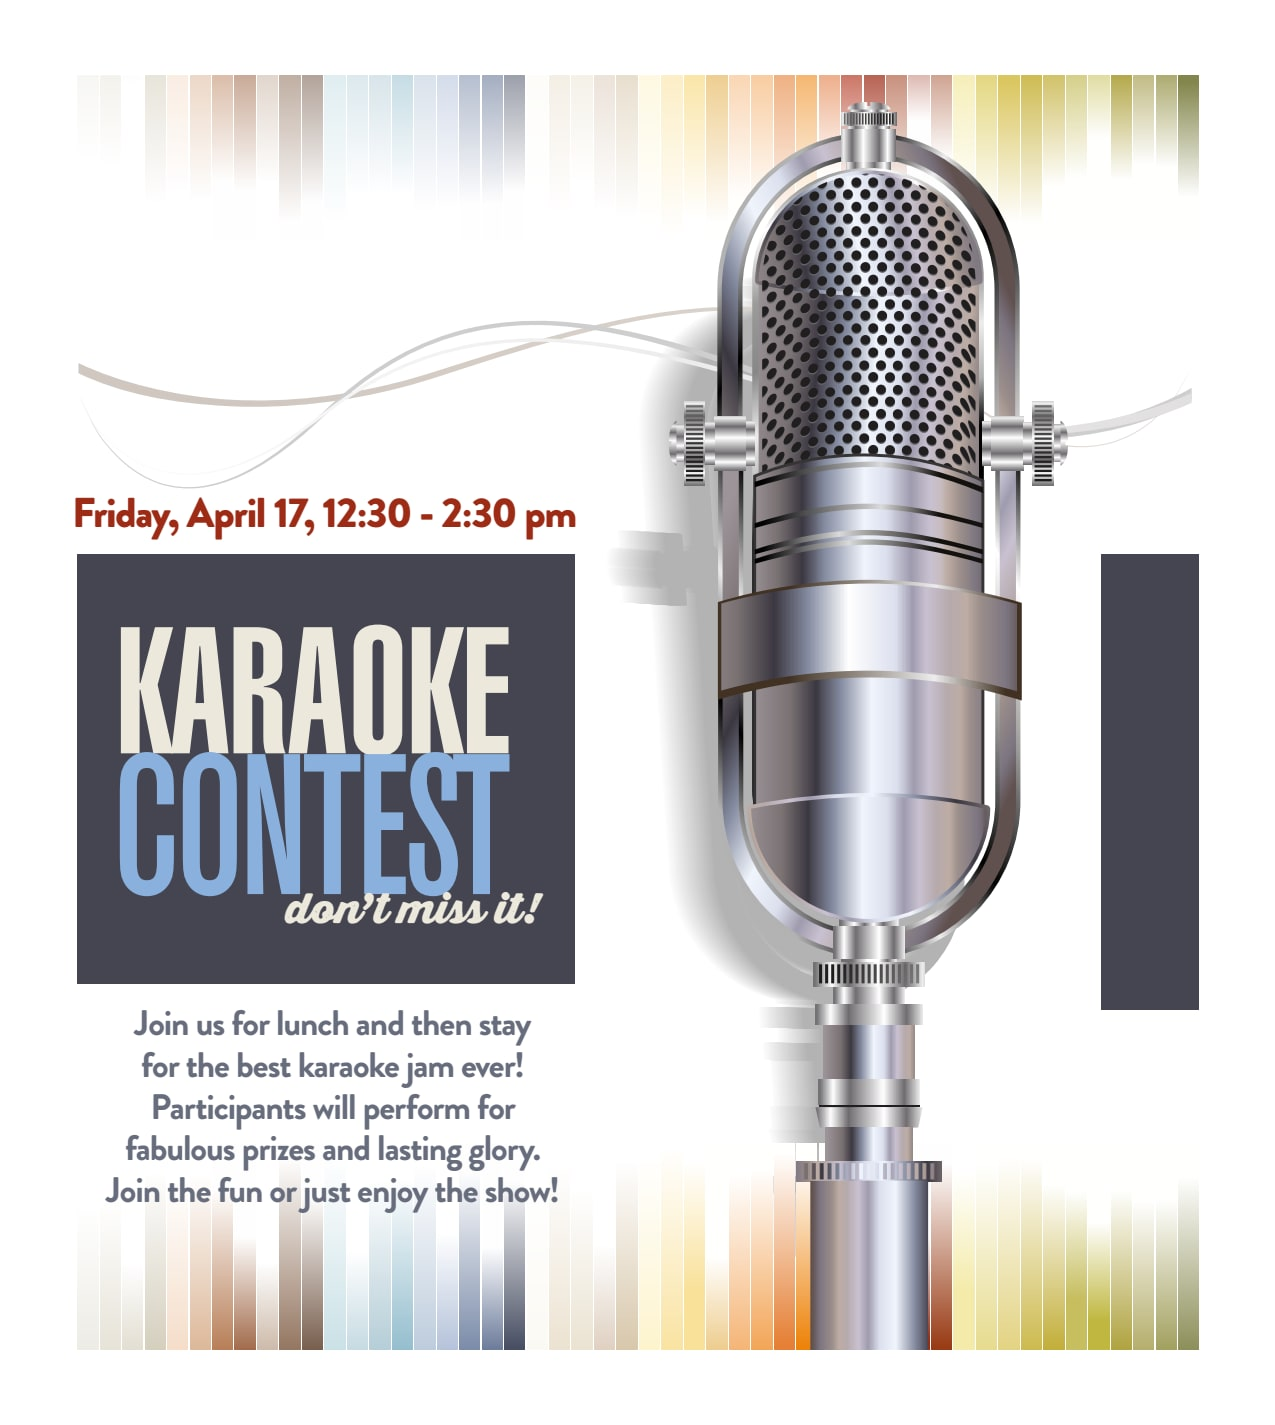 Karaoke Contest - activities at Benton House of Staley Hills in Kansas City, MO